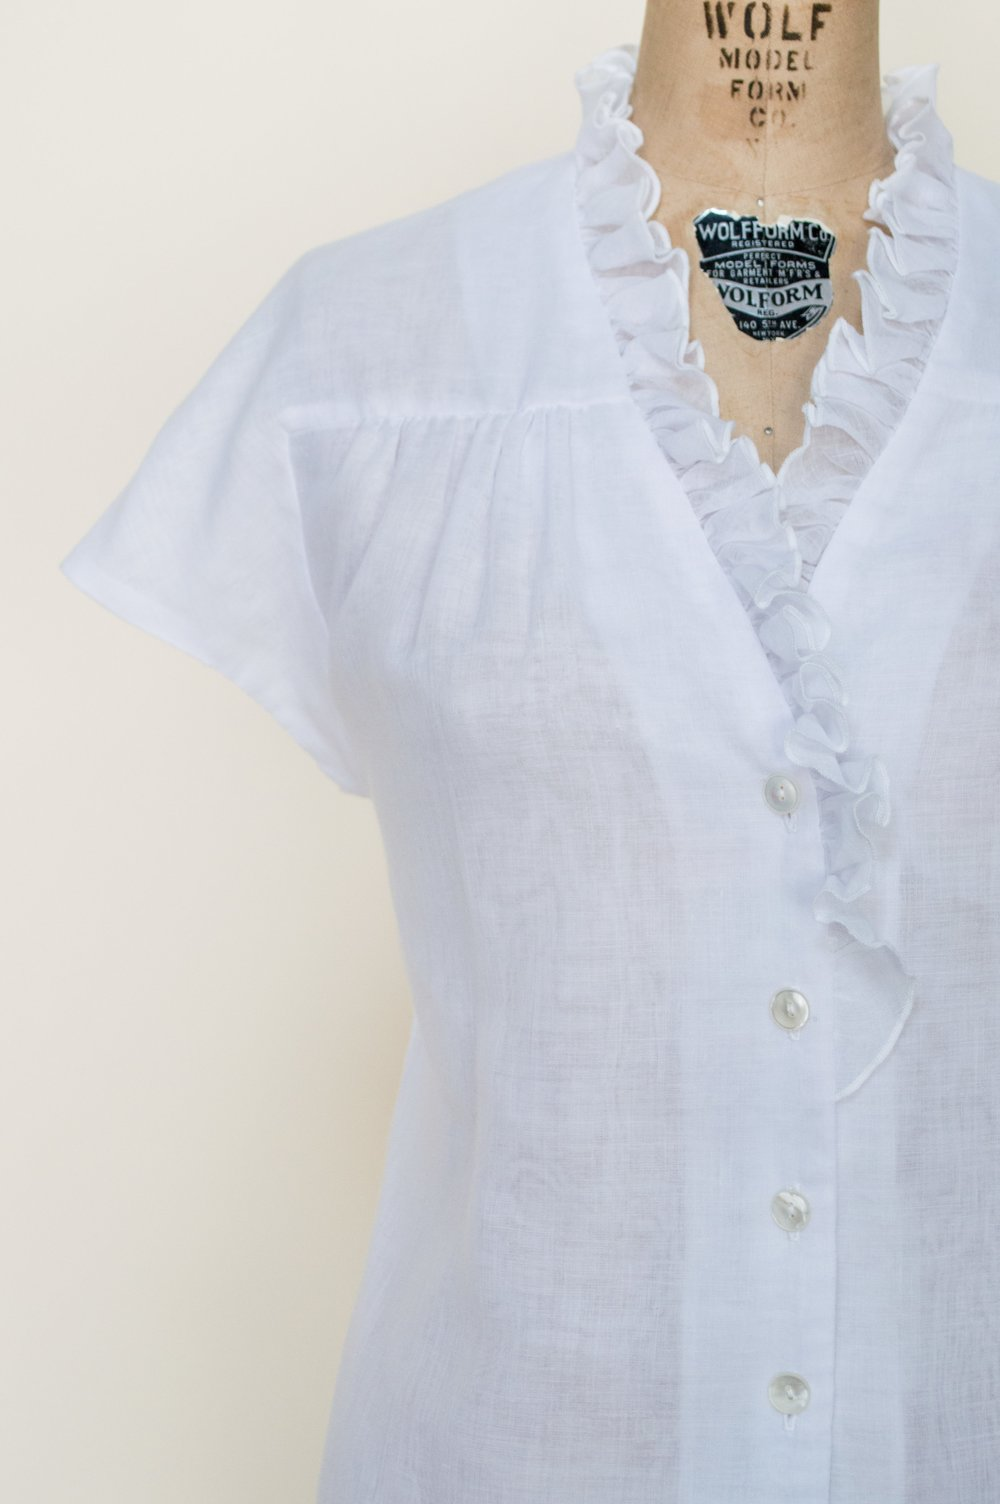 1970s white ruffle top from Dalena Vintage